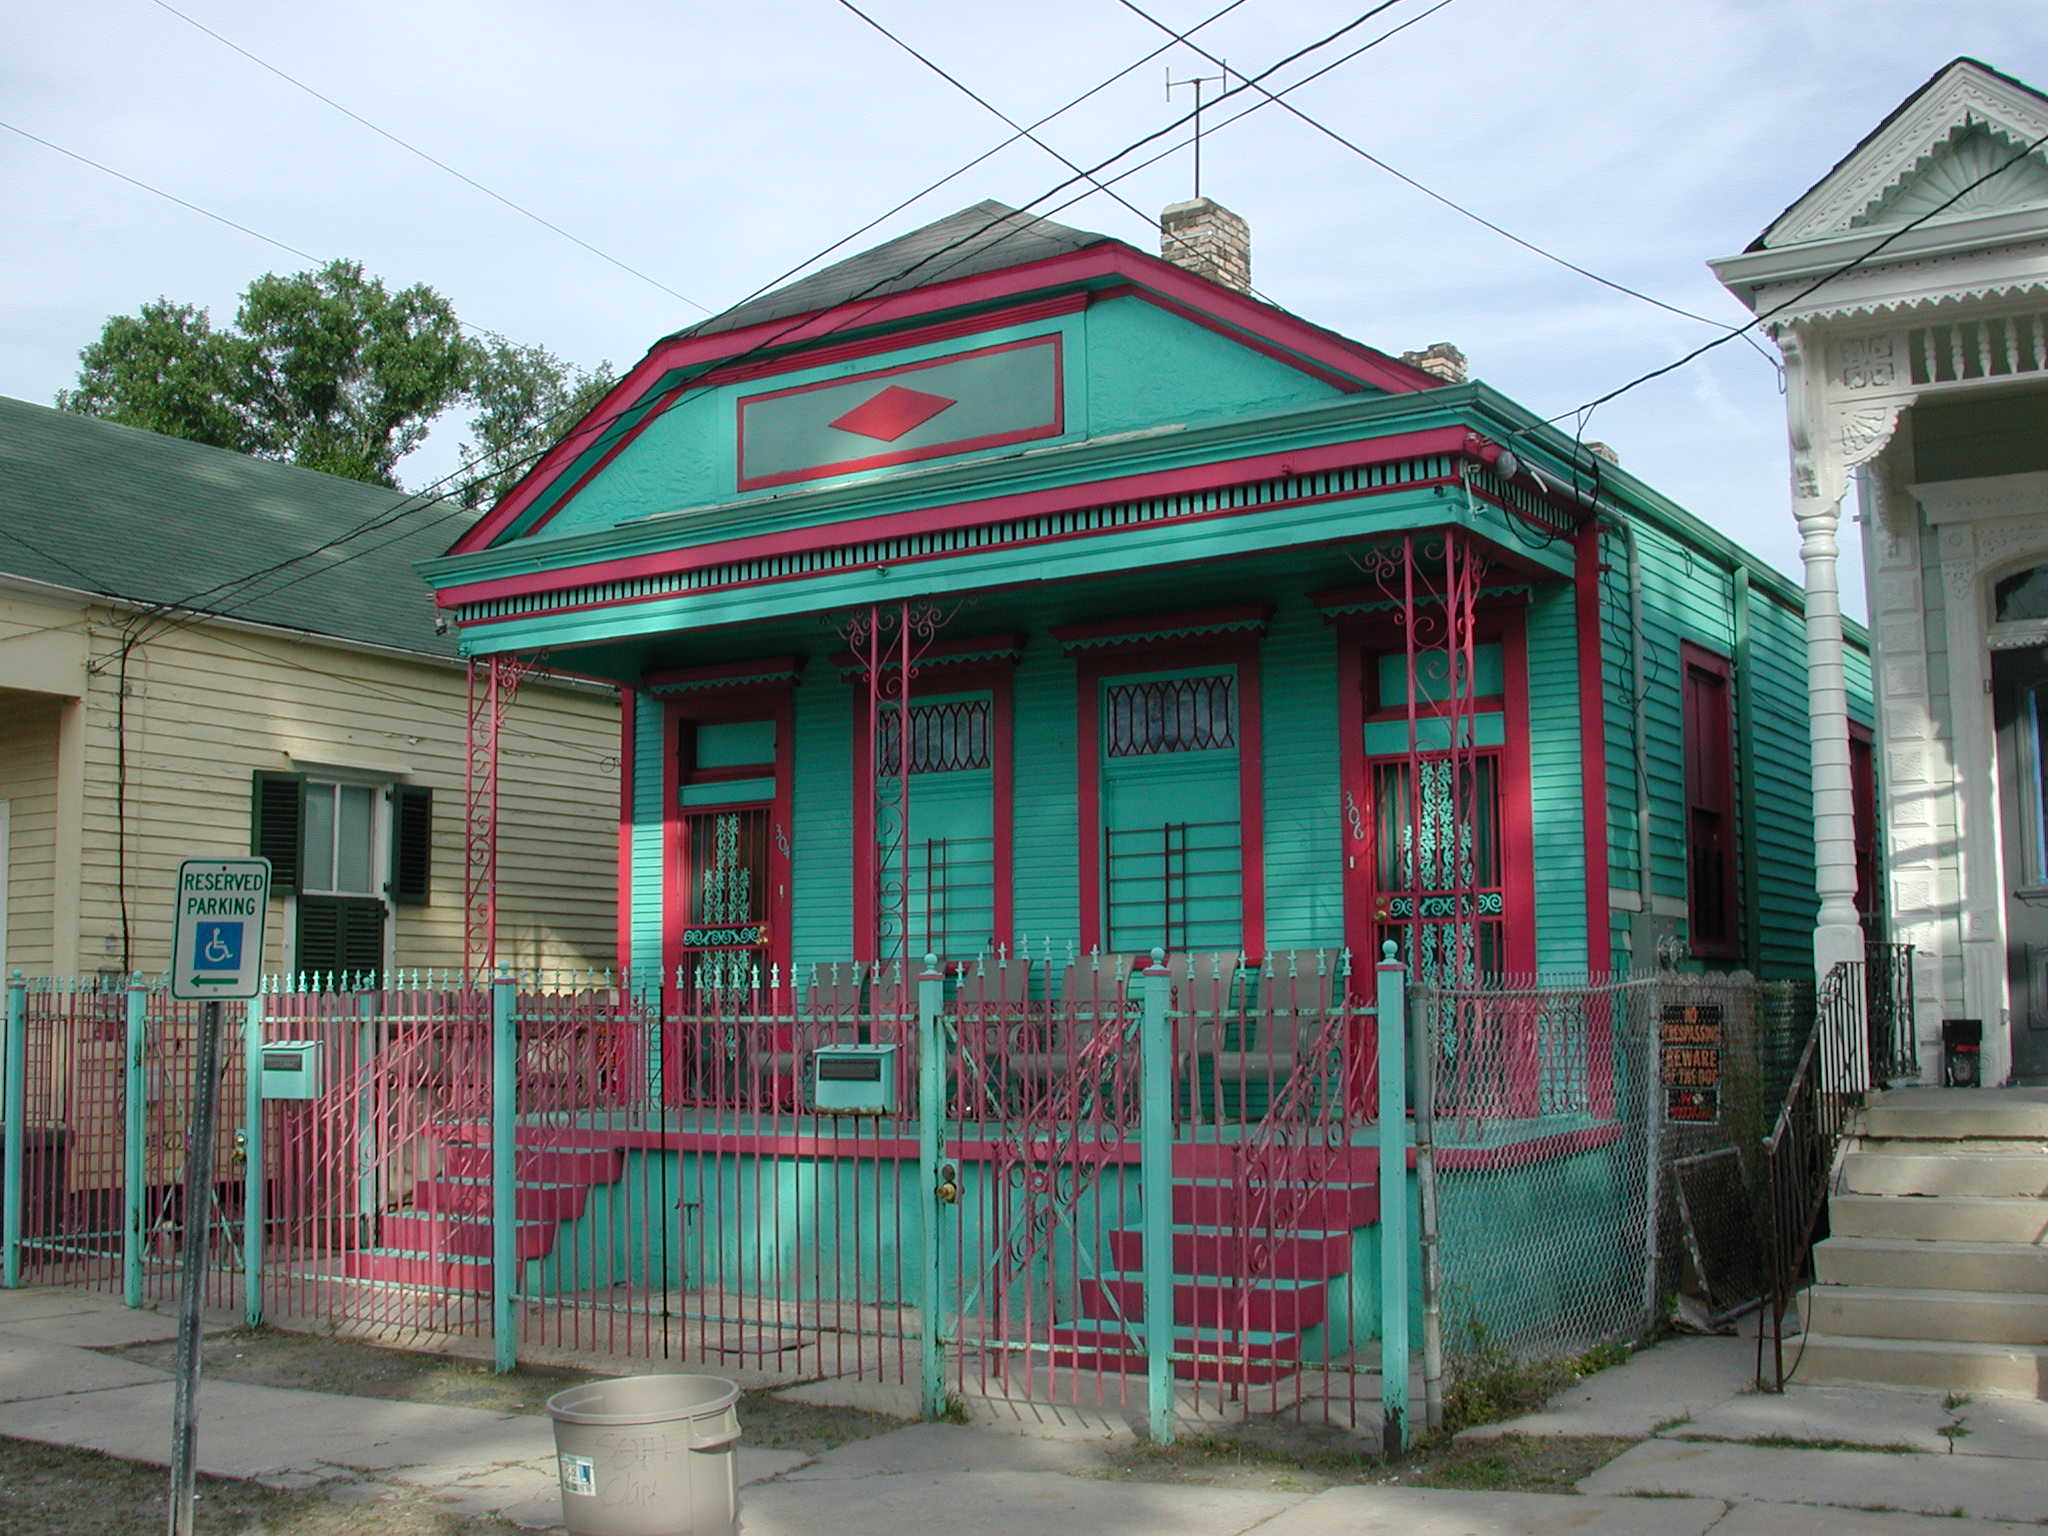 New Orleans Mid City File:mid-city New Orleans